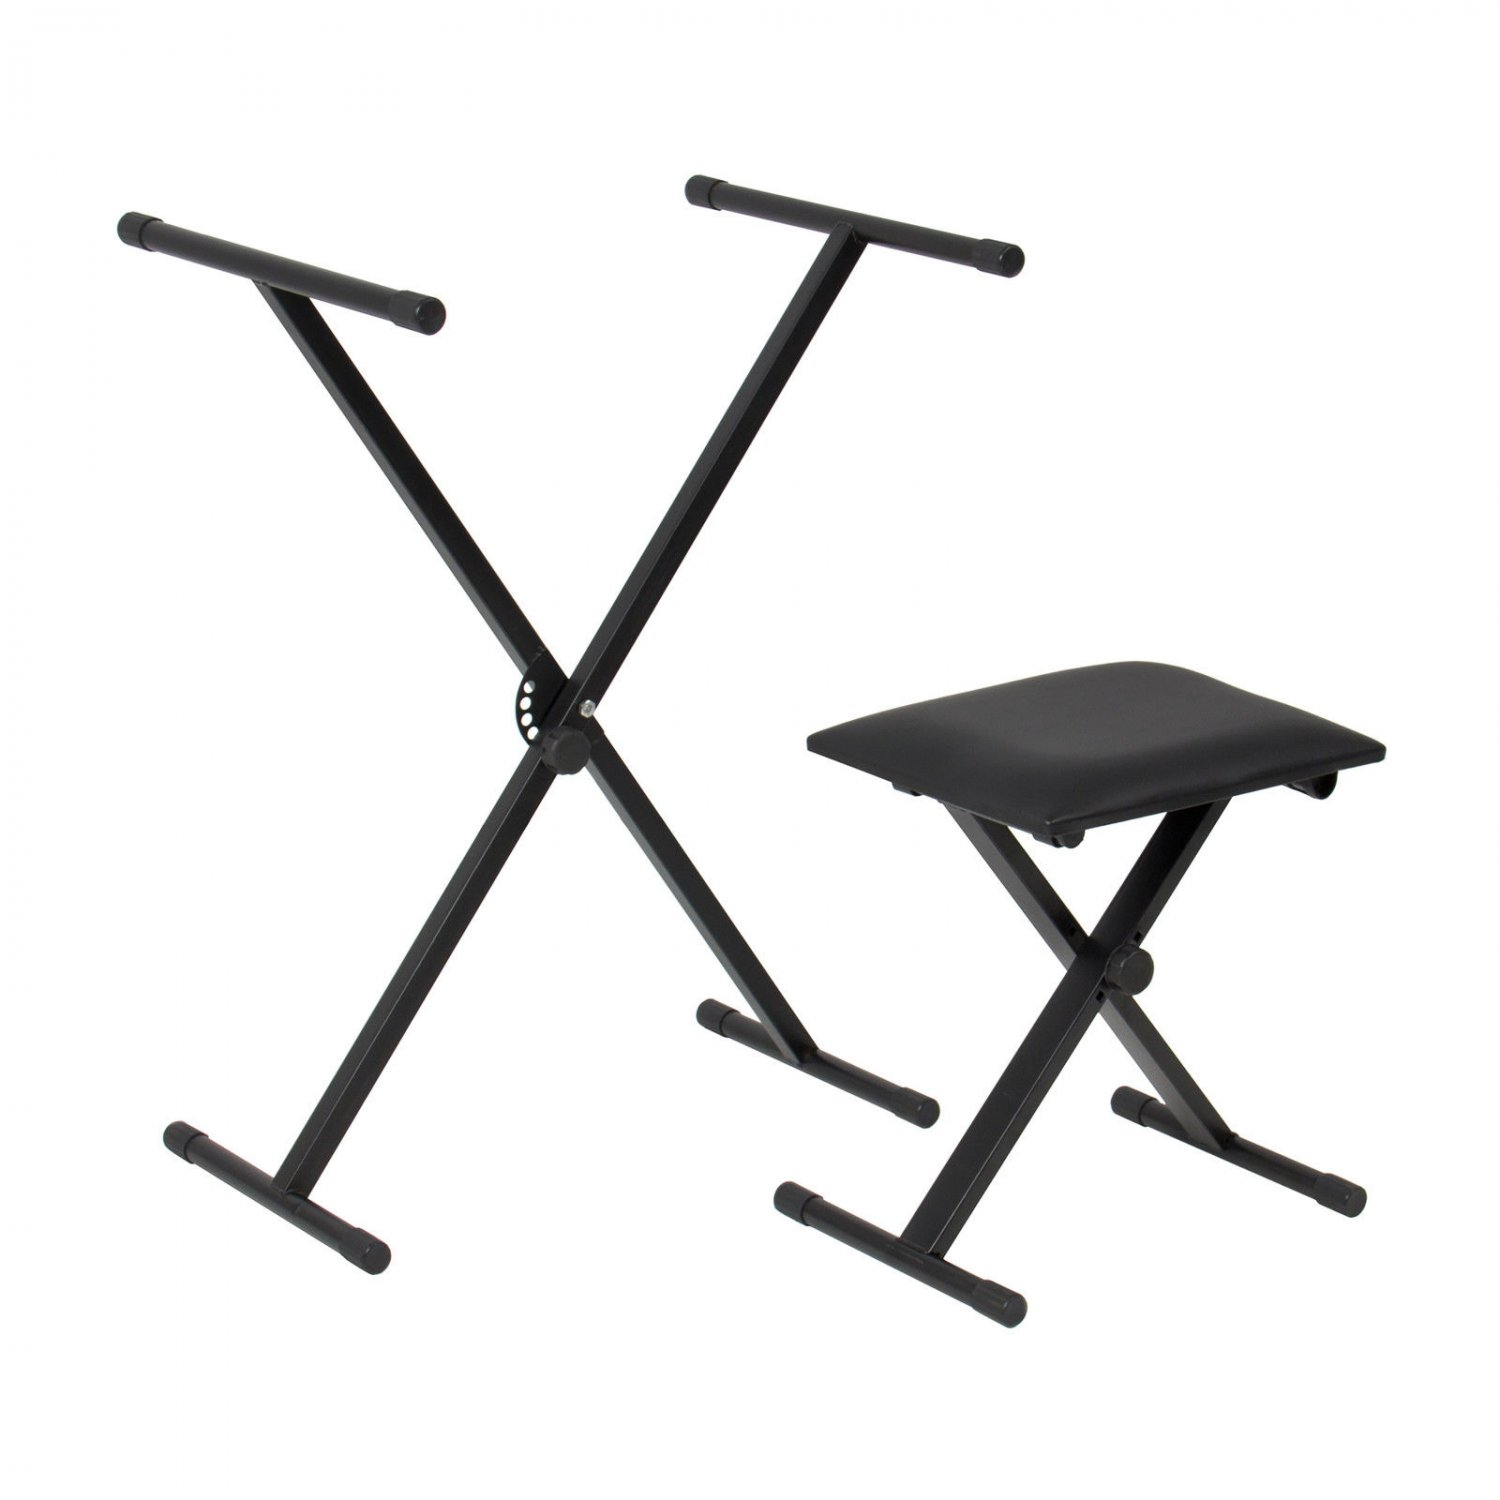 X Keyboard Stand & Padded Piano Bench Adjustable Leather Folding Seat 2 in 1